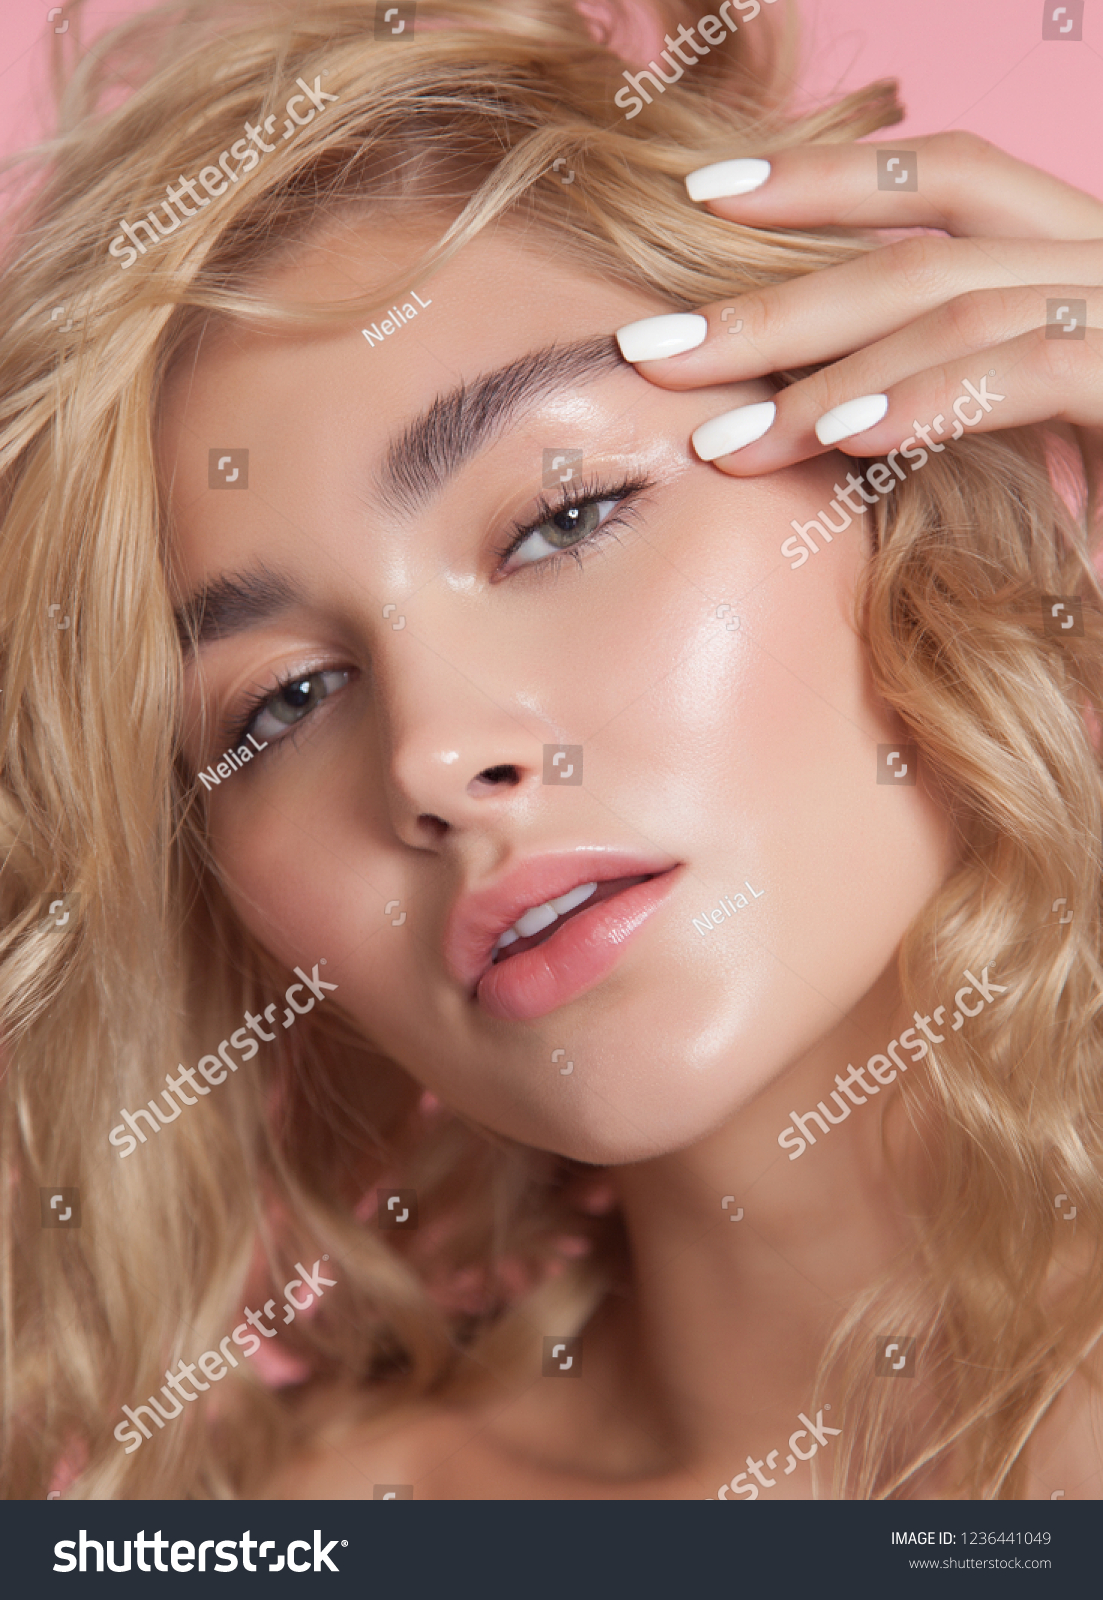 close-up beauty portrait. young model with glowing healthy skin. beautiful blonde woman with natural make-up. white nail laquer